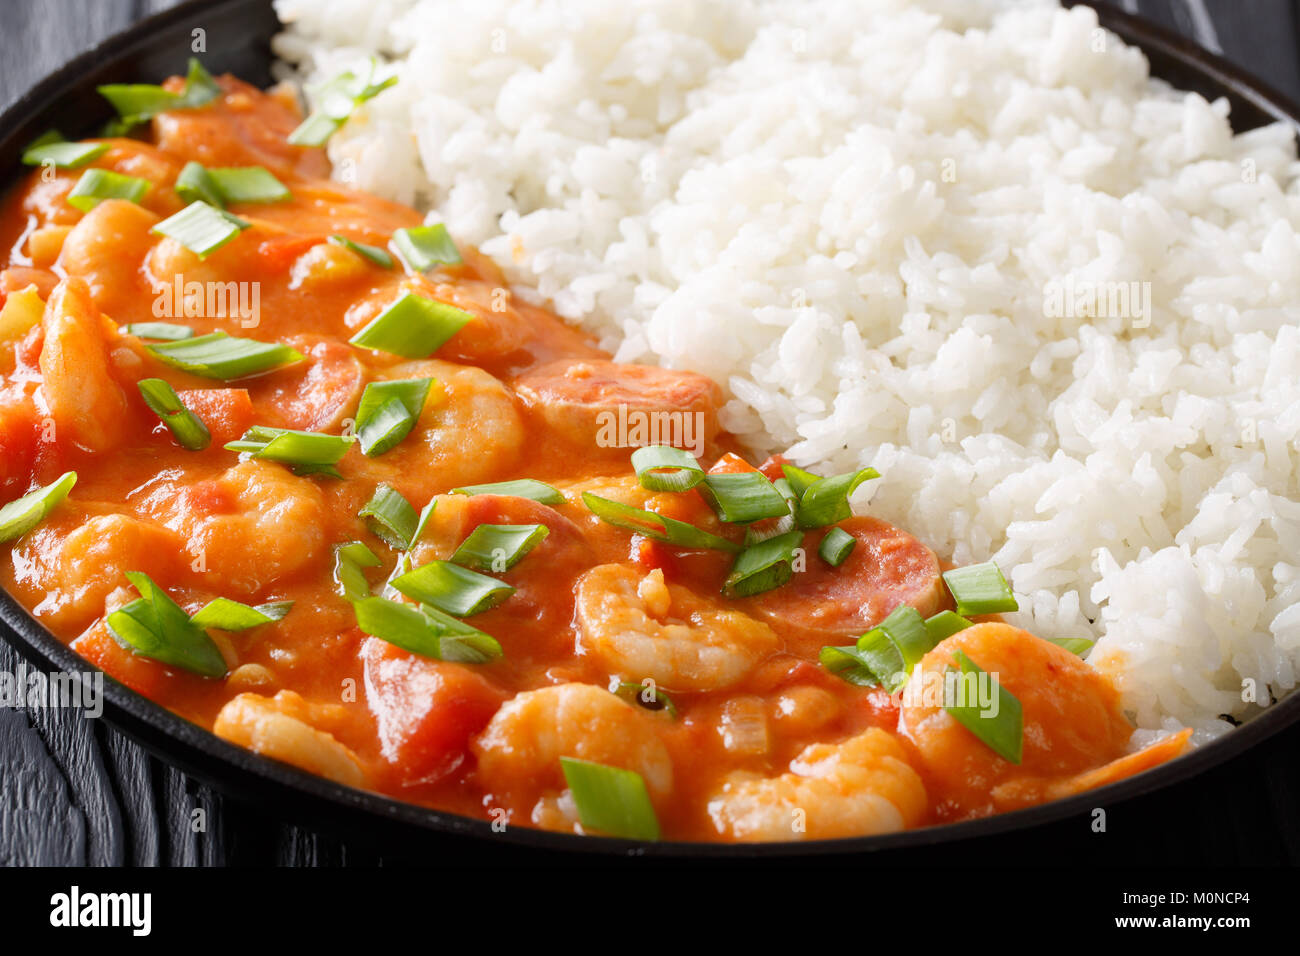 Delicious gumbo with prawns, sausage and rice macro on a plate on the table. horizontal - Stock Image